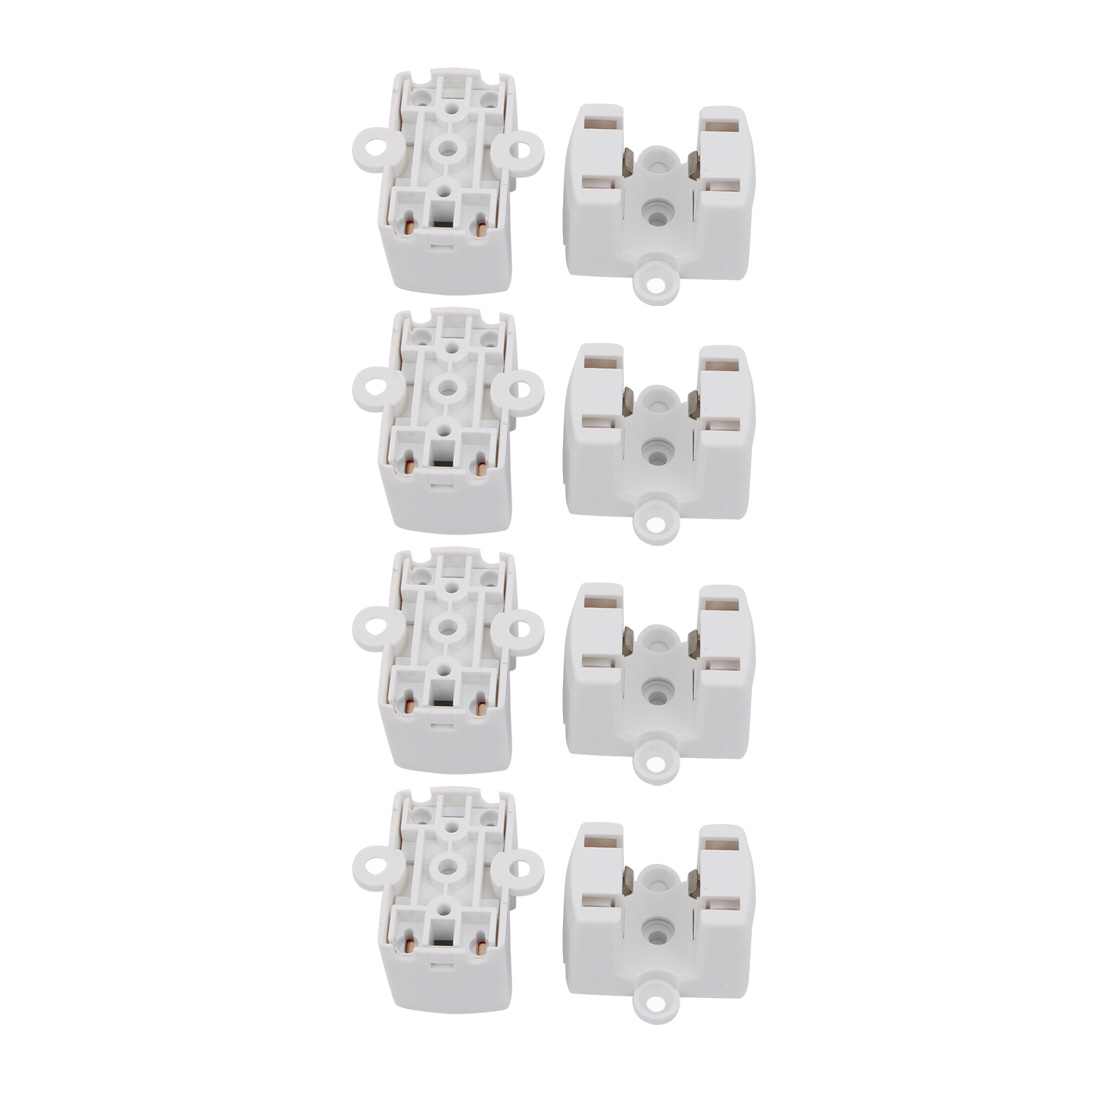 8 Pcs F34B AC 500V 2A 2GX13 Base Light Socket PL Fluorescent Tube Lamp Holder